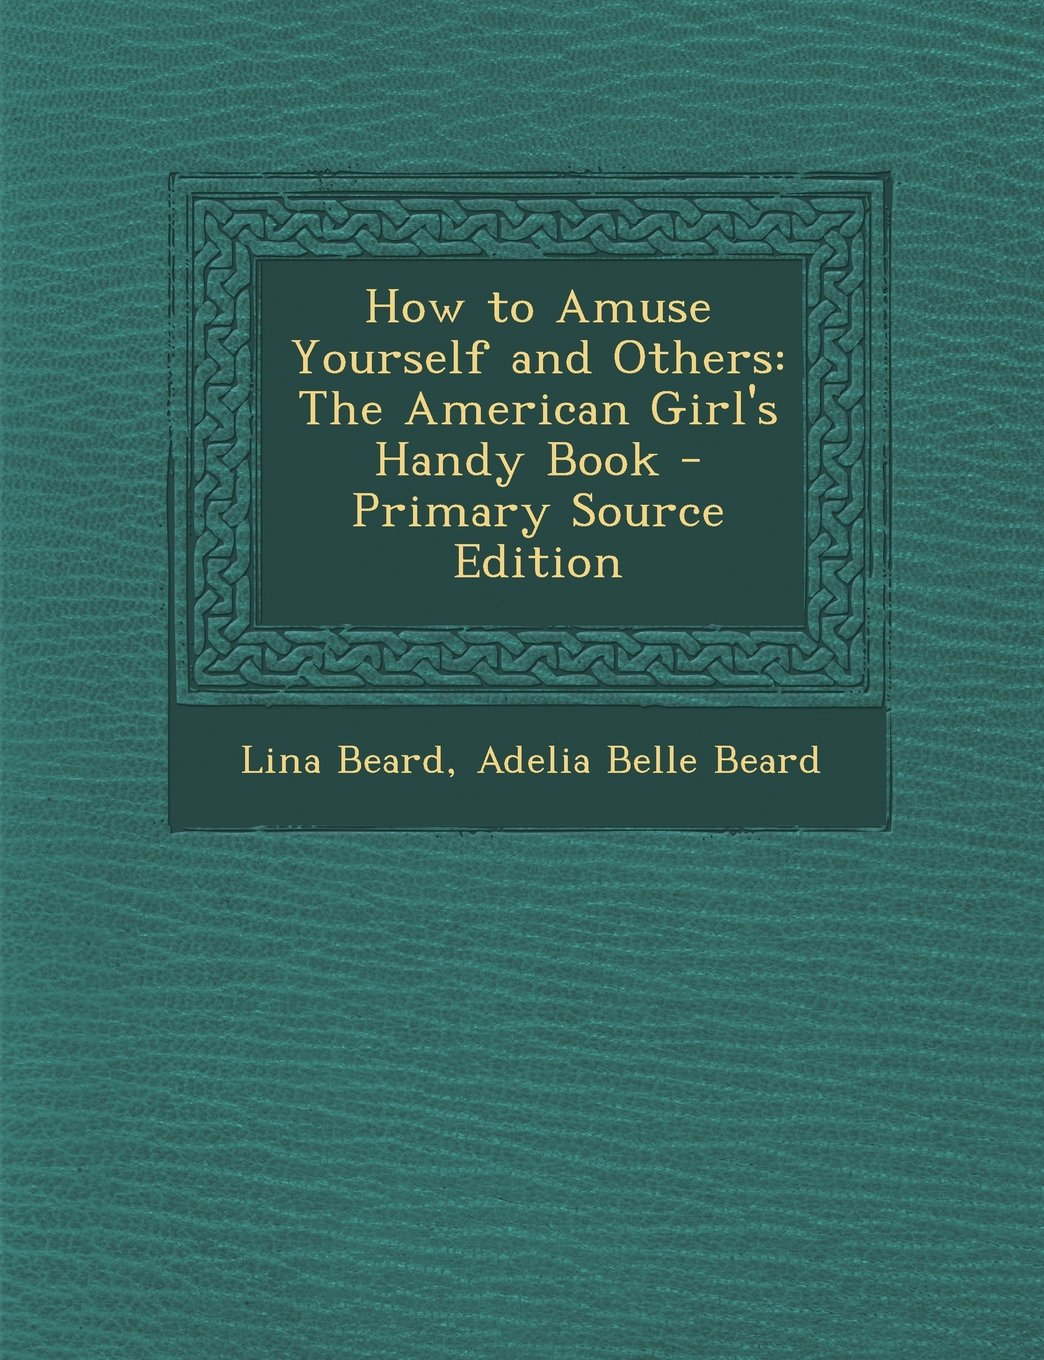 How to Amuse Yourself and Others: The American Girl's Handy Book pdf